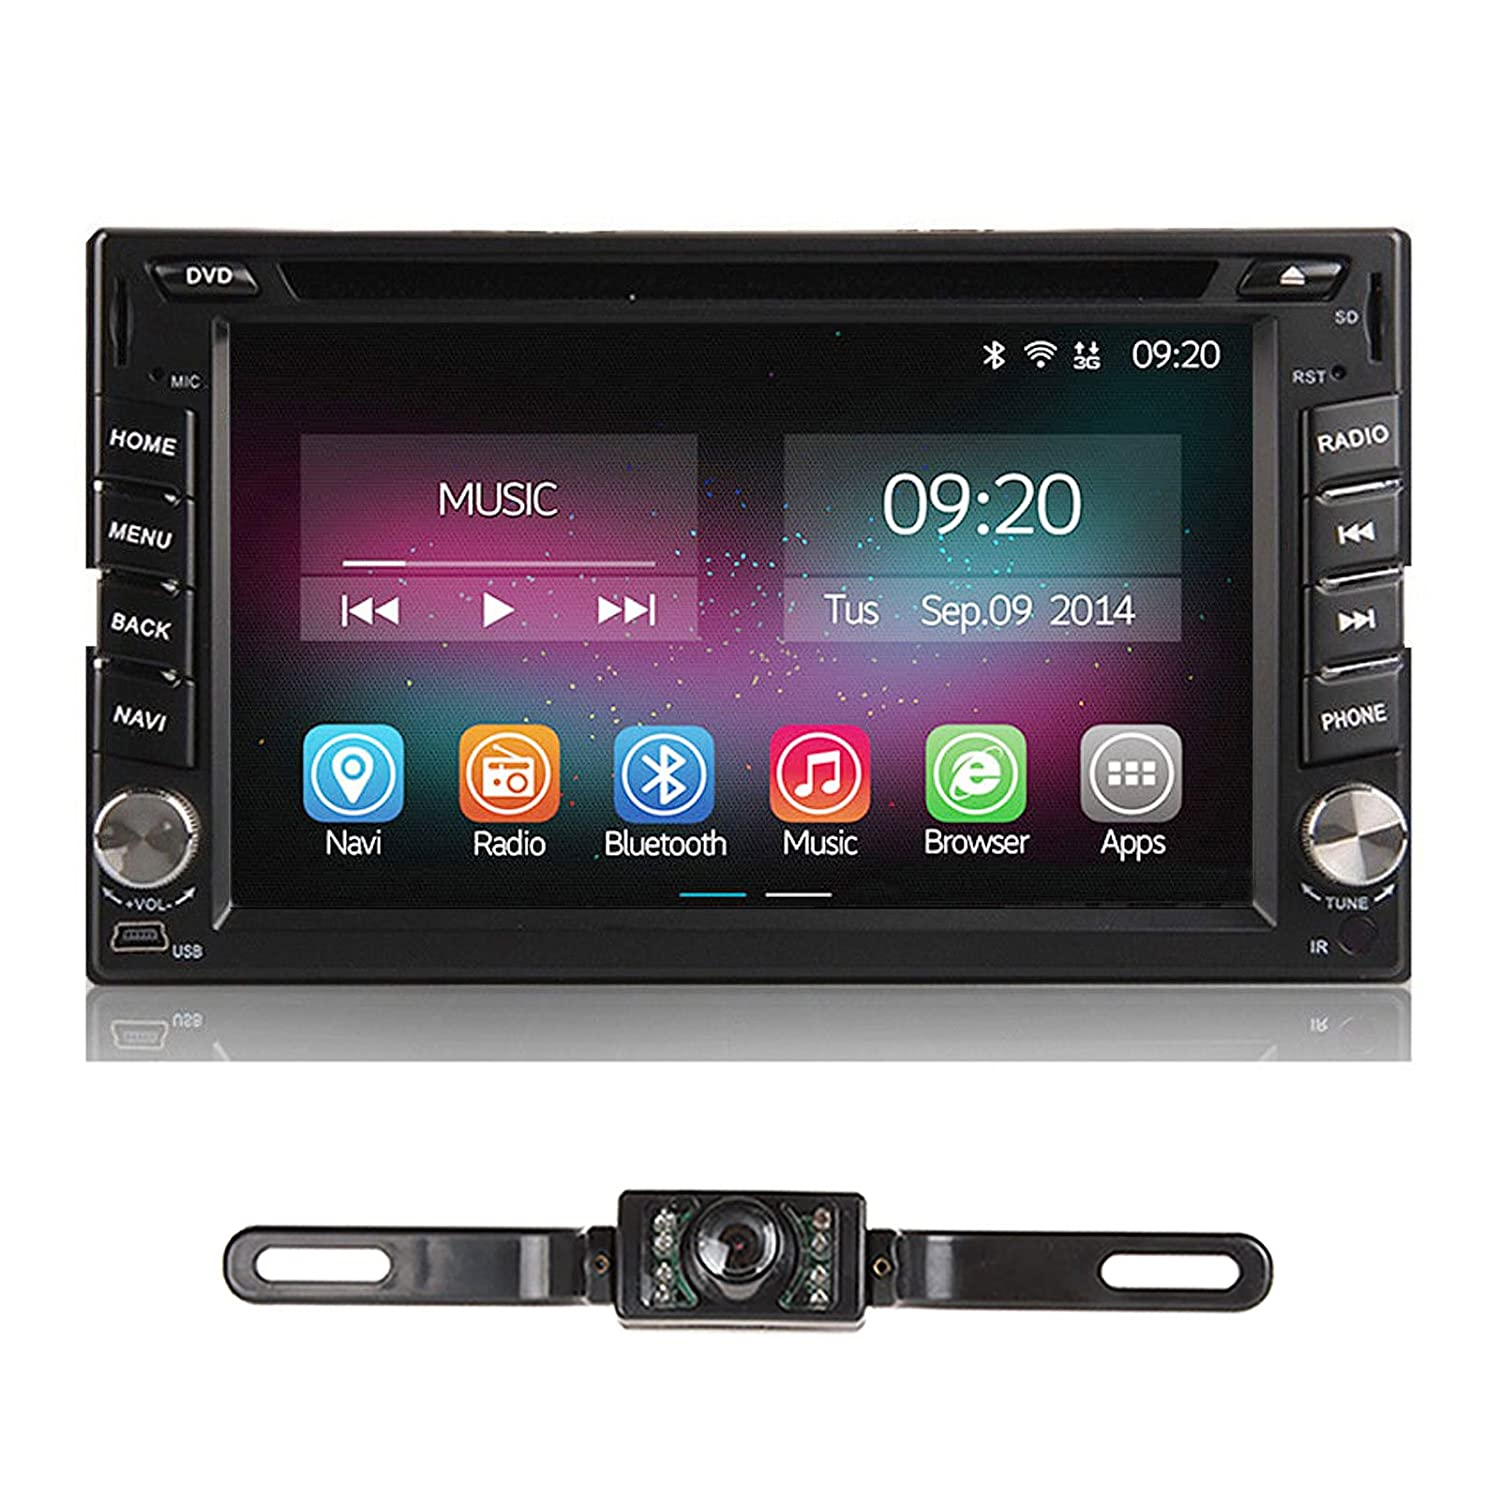 amazon com car stereo with backup camera 6 2 inch car radio androidamazon com car stereo with backup camera 6 2 inch car radio android 7 1 car dvd player double 2 din touch screen built in bluetooth gps navigation for car